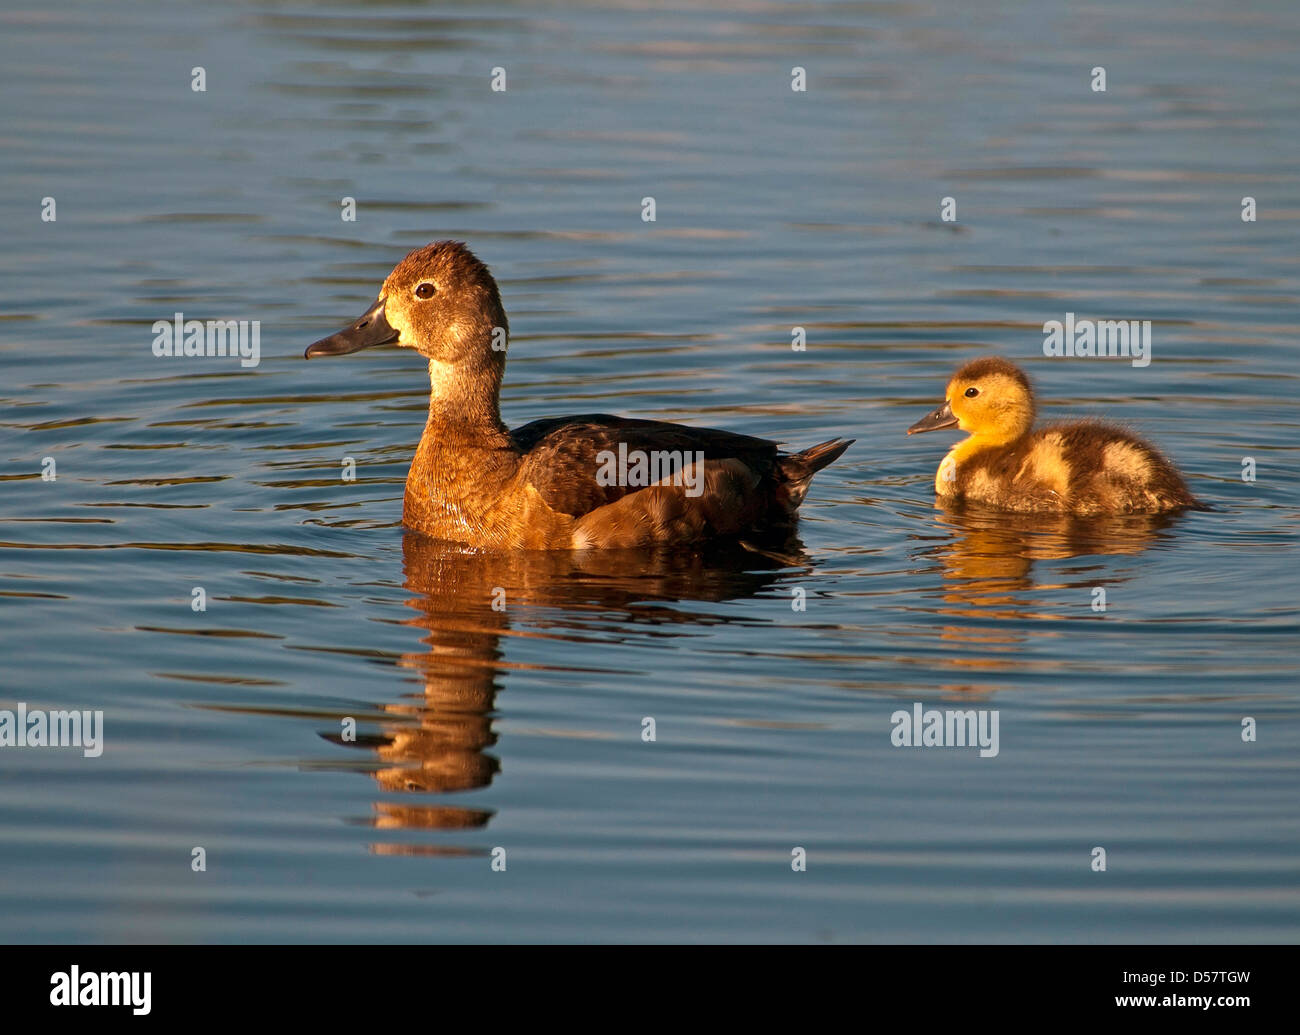 American Widgeon ,Baldpate, Anas americana,Female swimming with chick - Stock Image